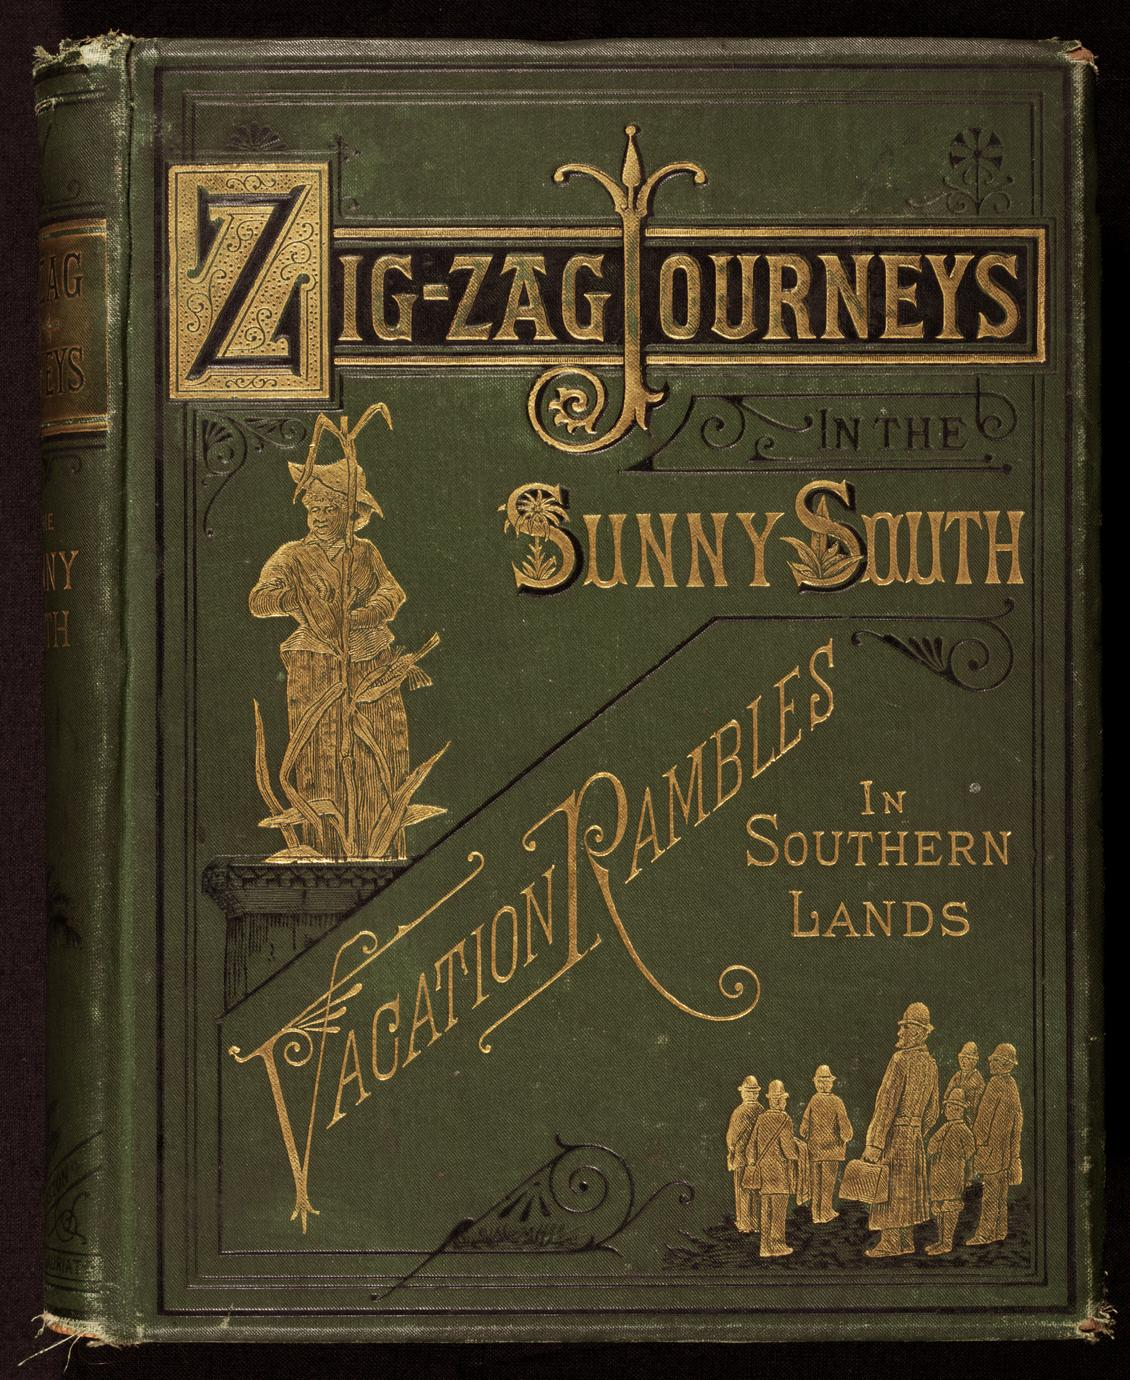 Zigzag journey in the sunny South ; or, Wonder tales of early American history (1 of 4)